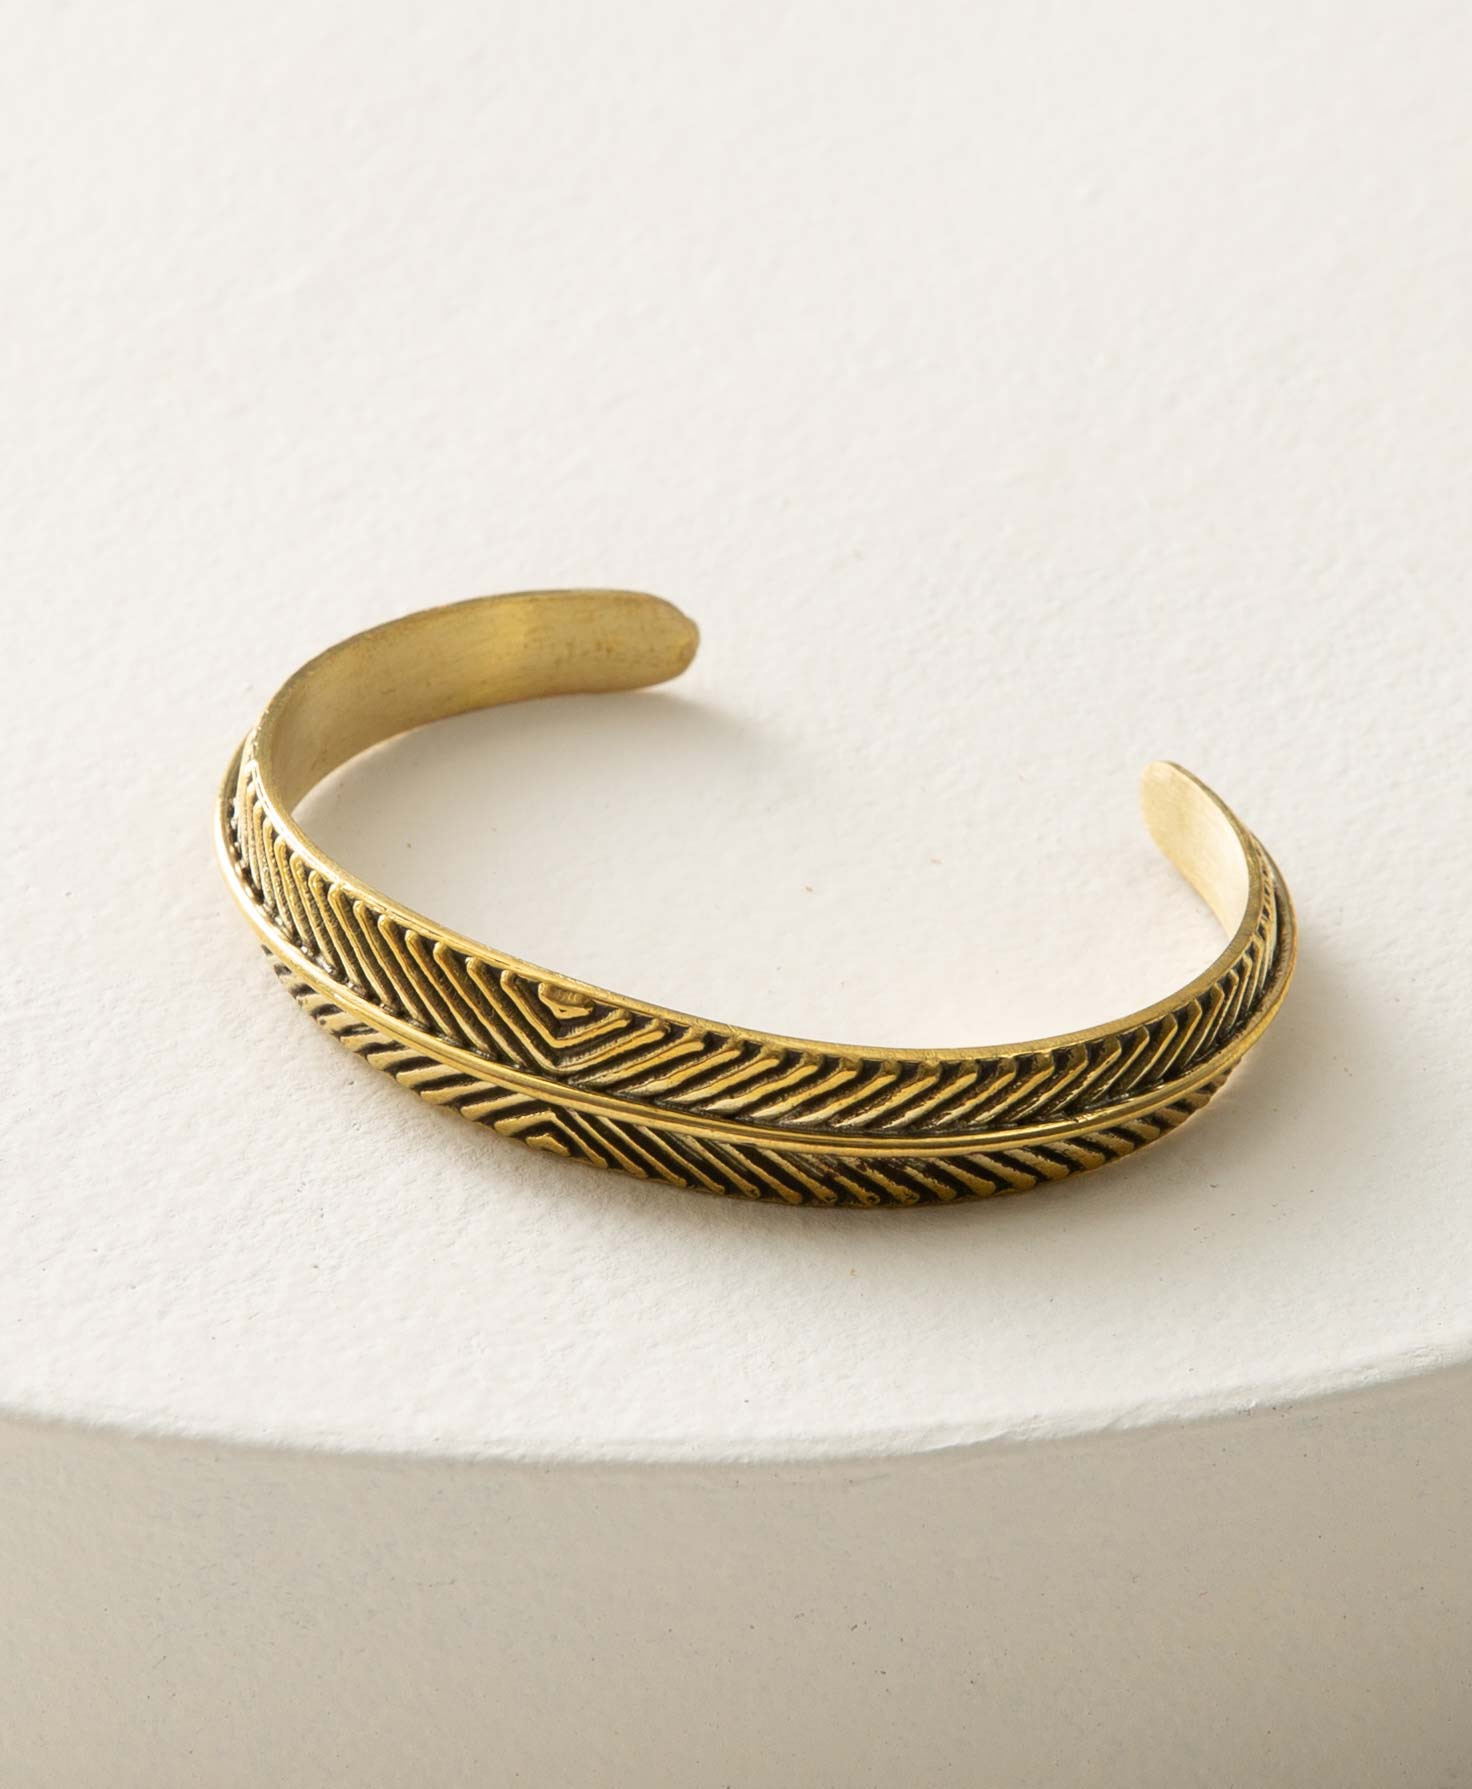 The Apex cuff sits on a white circular block. It is a brass cuff with an opening in the back that allows the wearer to slide it on and off. The brass features a repeating geometric pattern made up of angled lines running around the entire cuff, creating a chevron-like effect. A thin strip of brass runs through the center of the pattern.